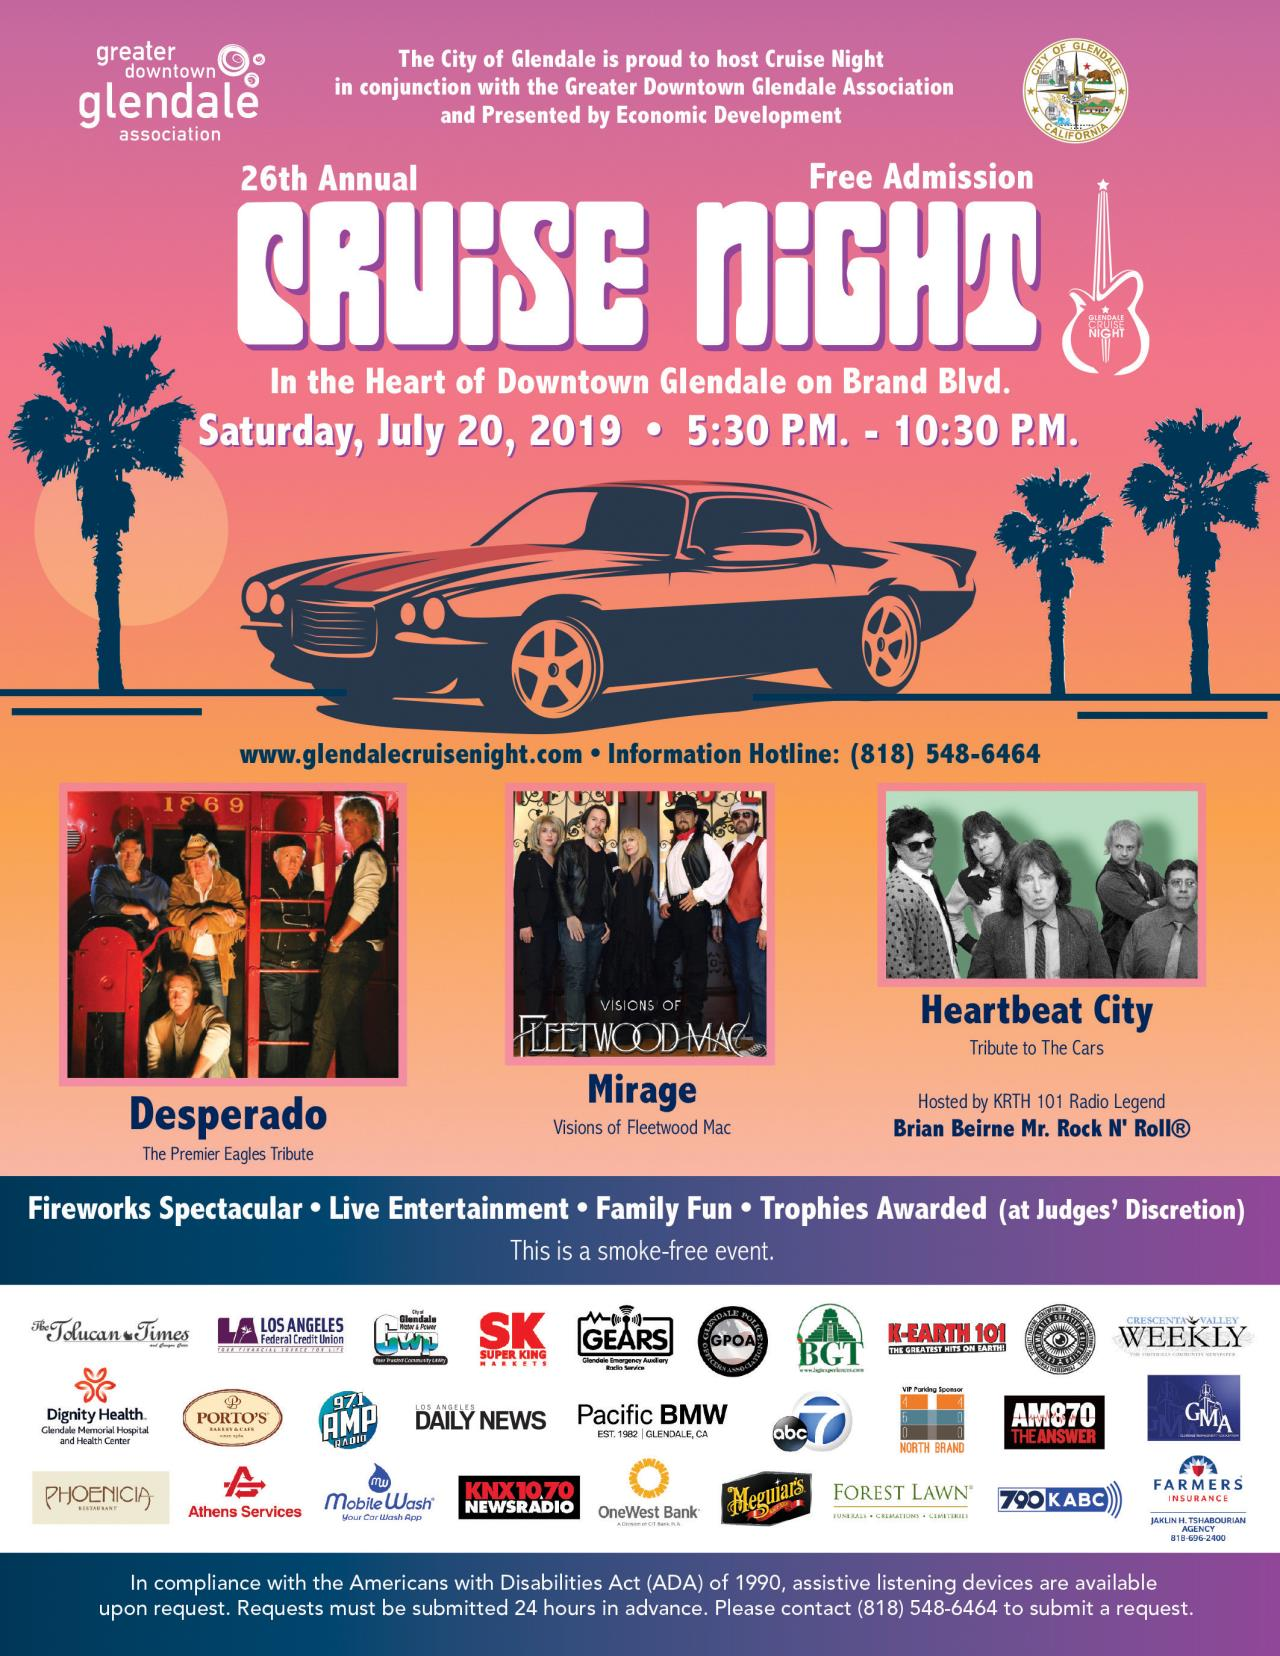 Cruise Night Save The Date Card 2019